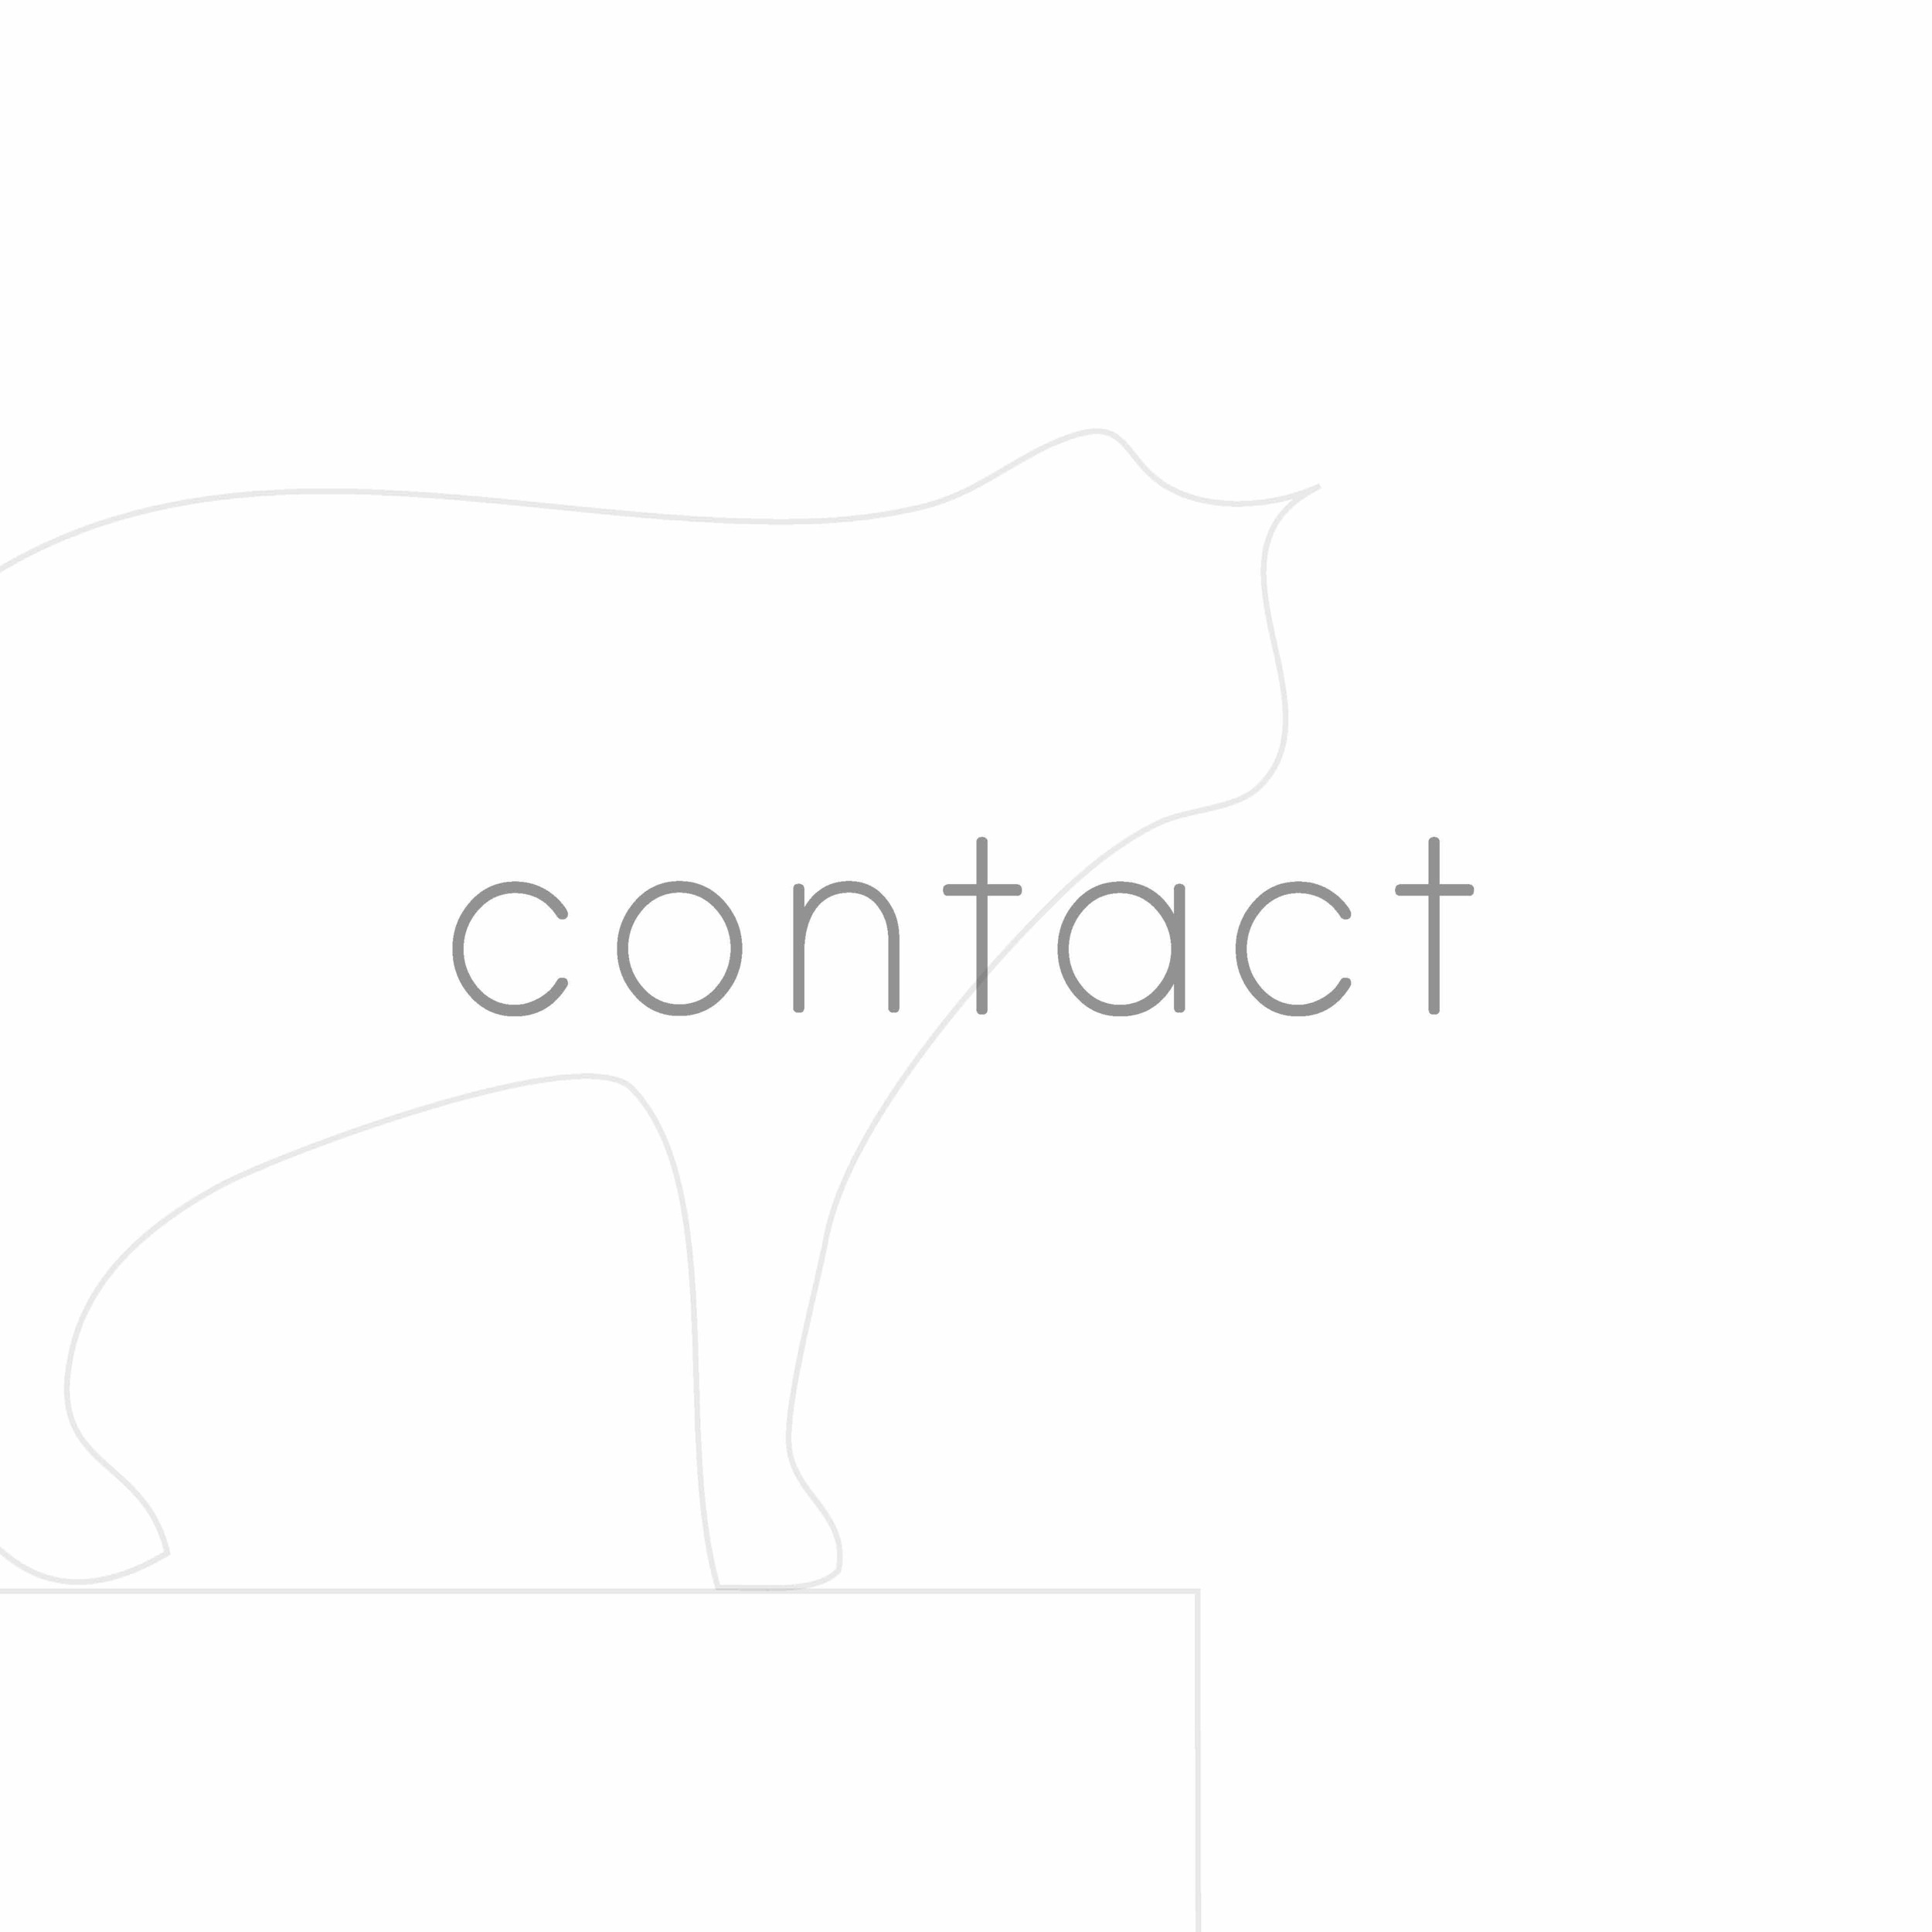 Squarespace-contact .jpg